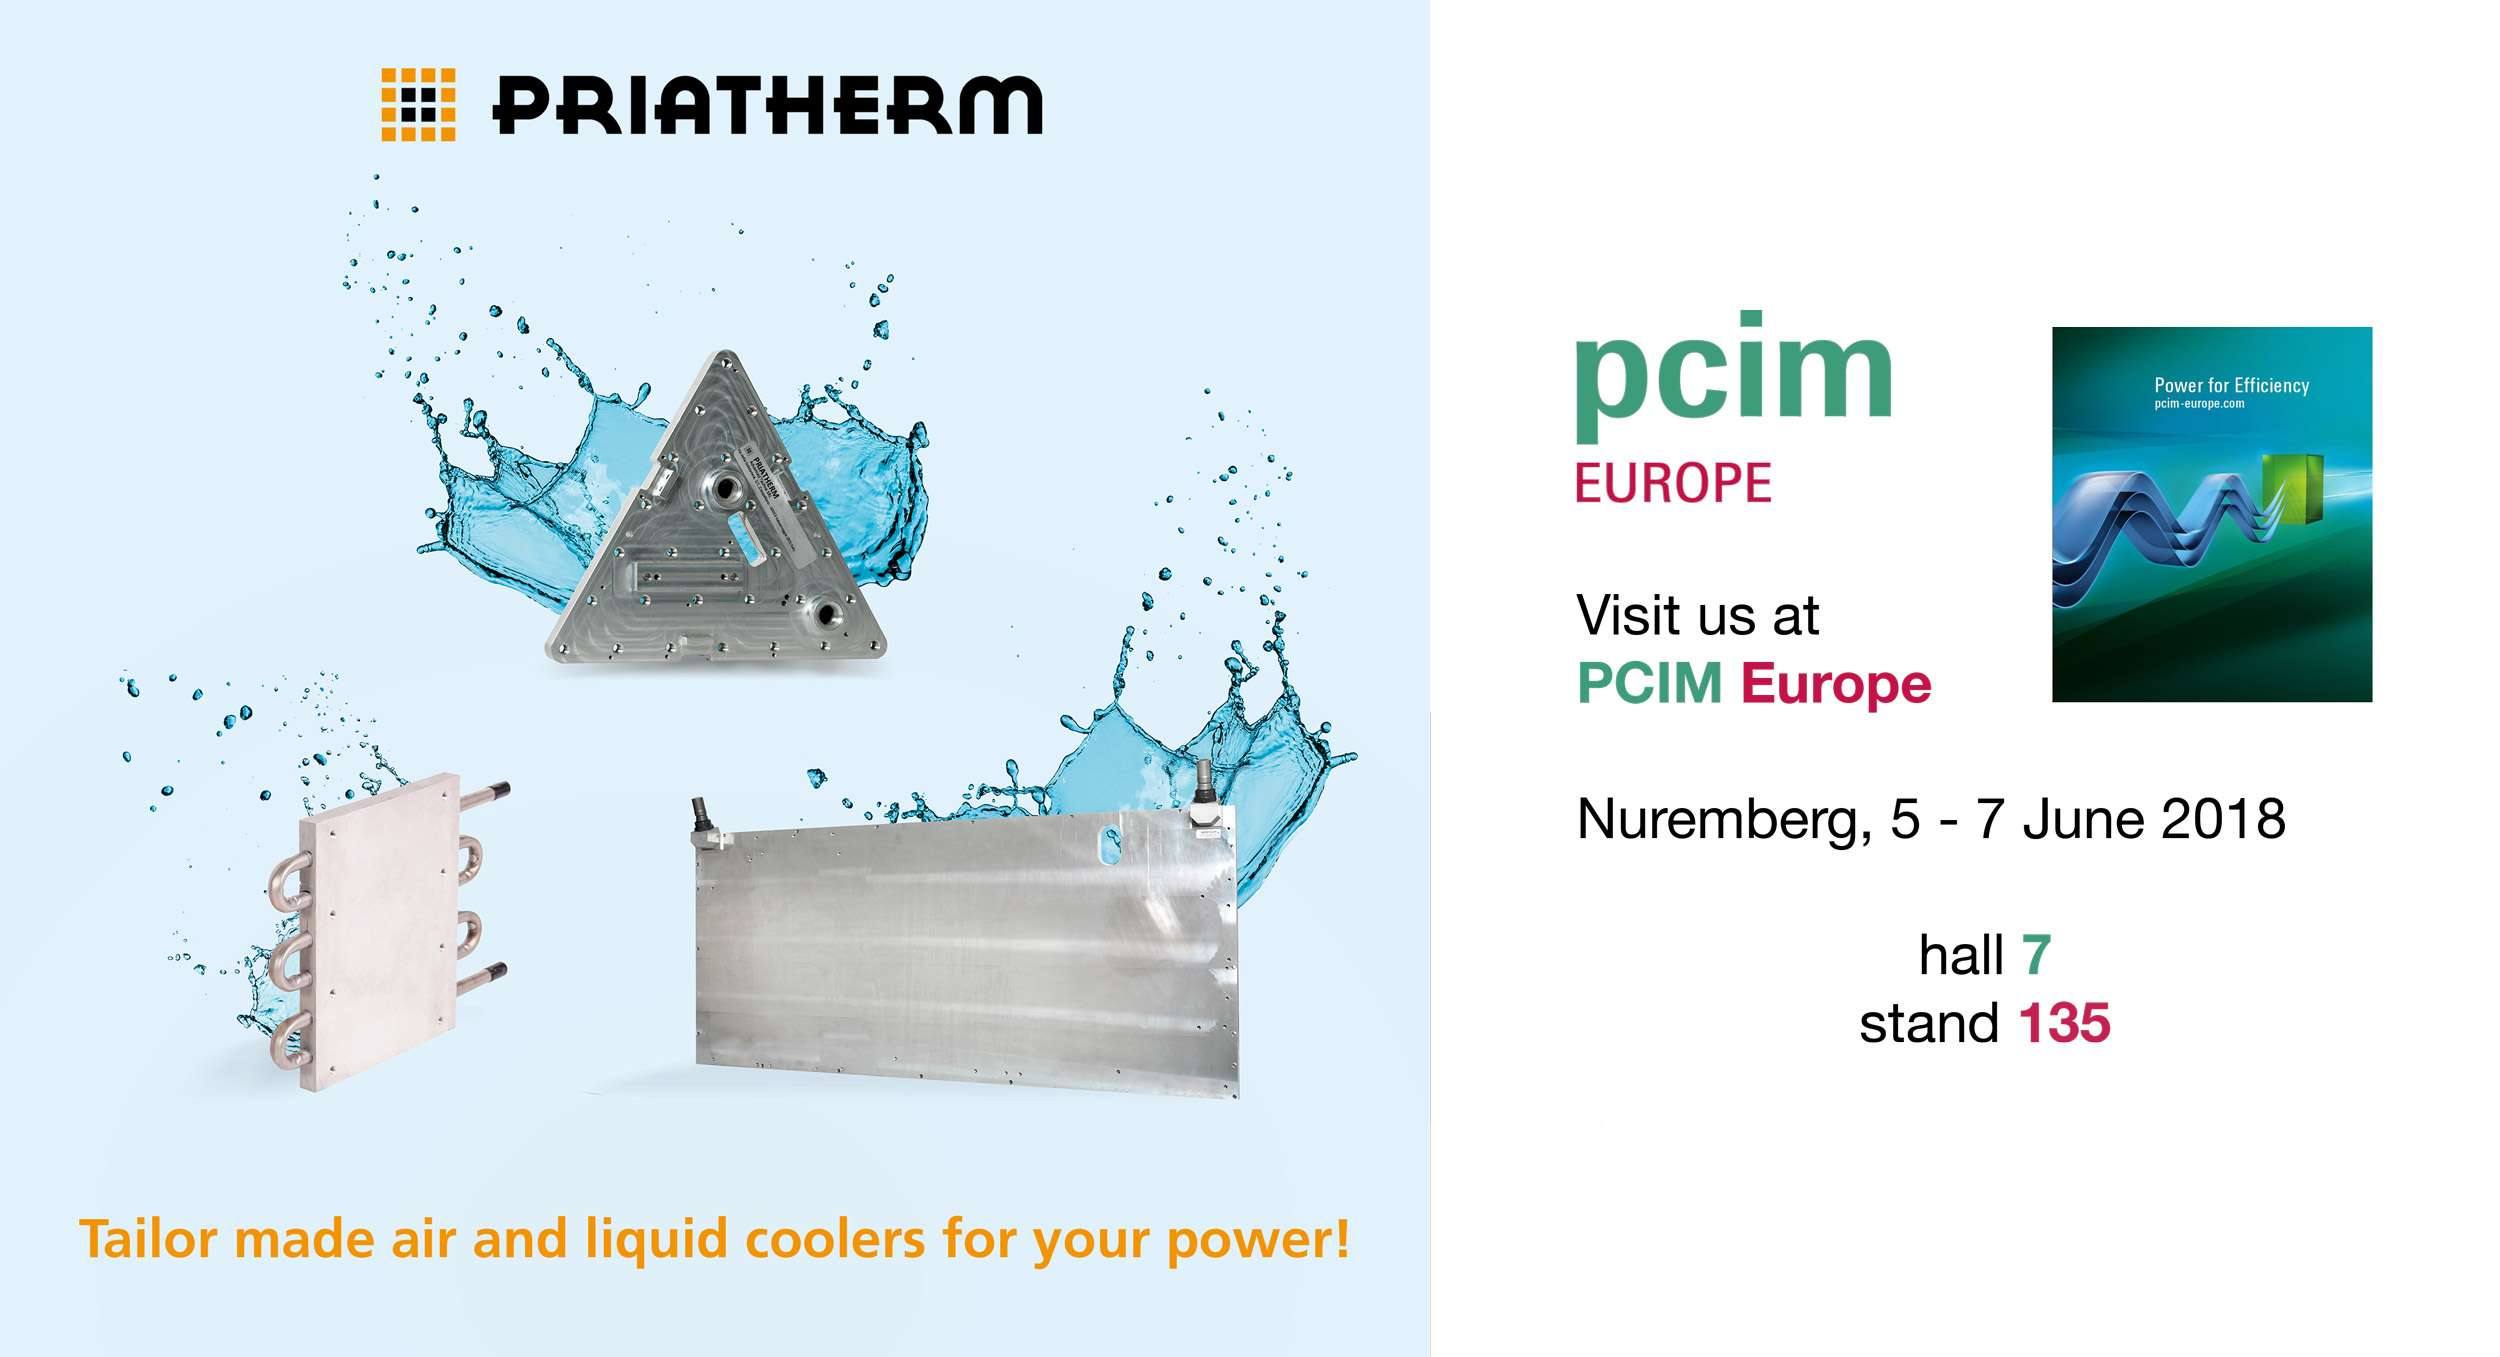 Find us at PCIM Europe